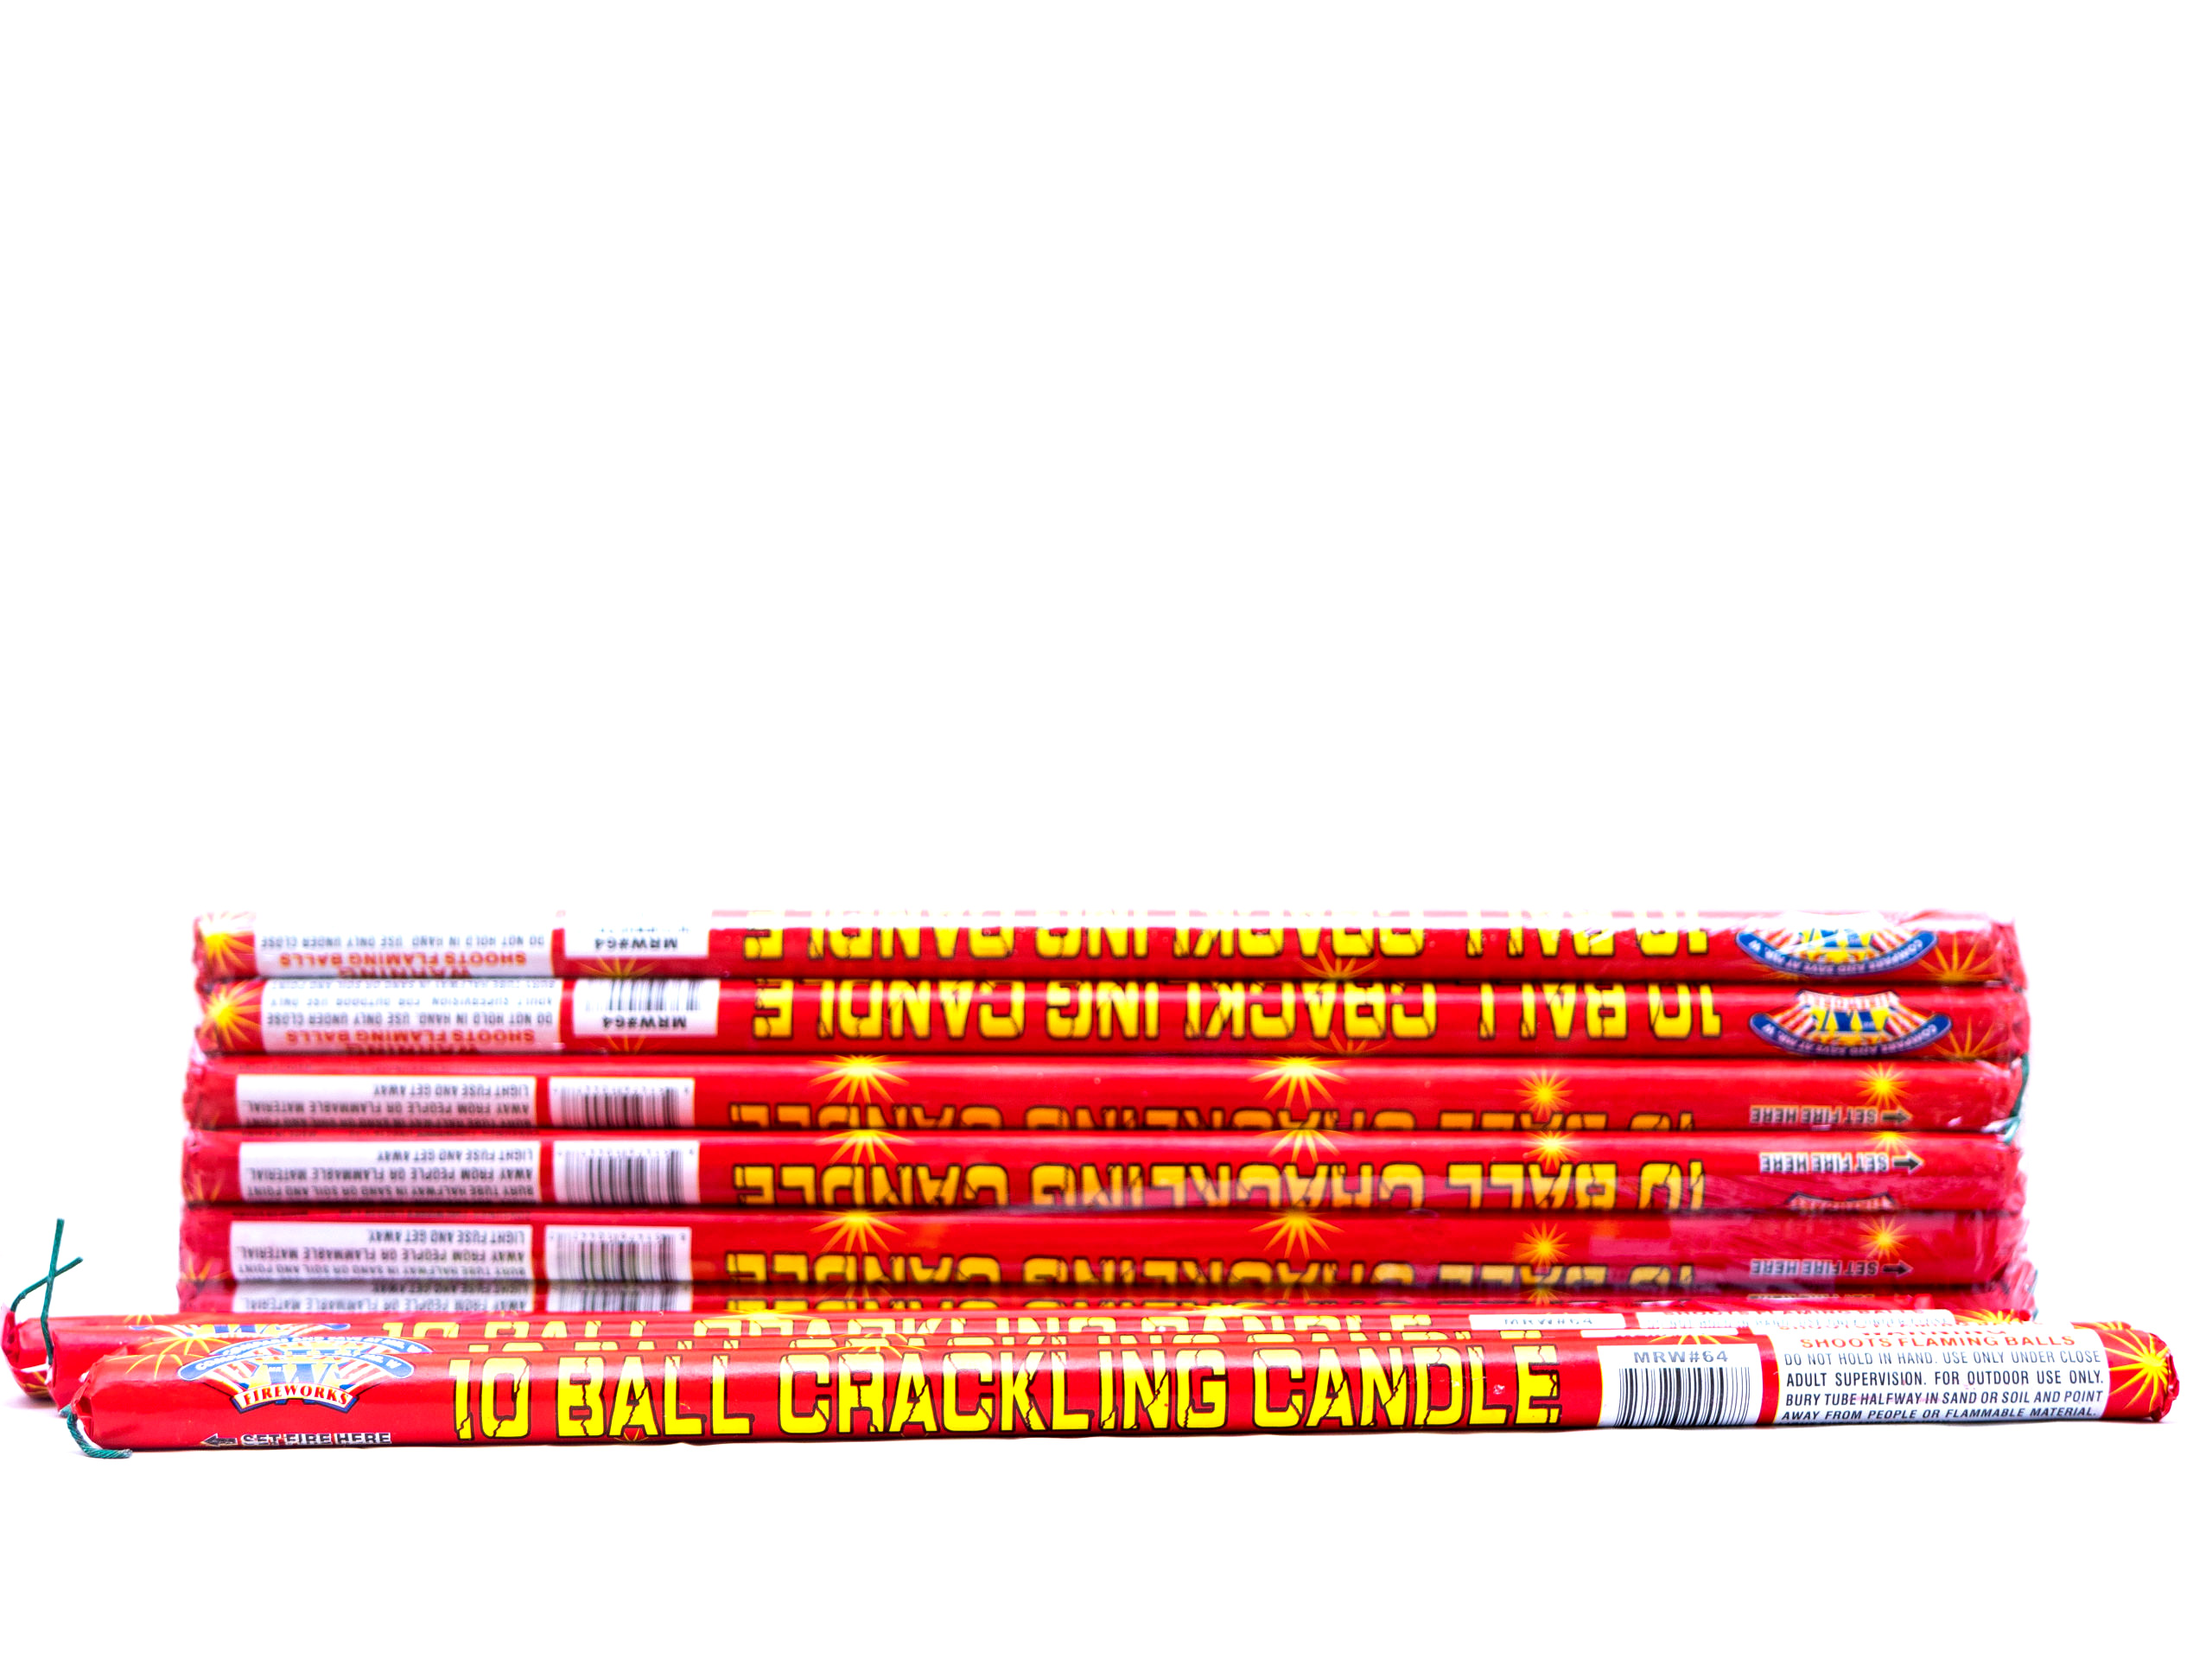 10 Ball Color Crackling Roman Candle (Buy 1 Get 1 Free!)